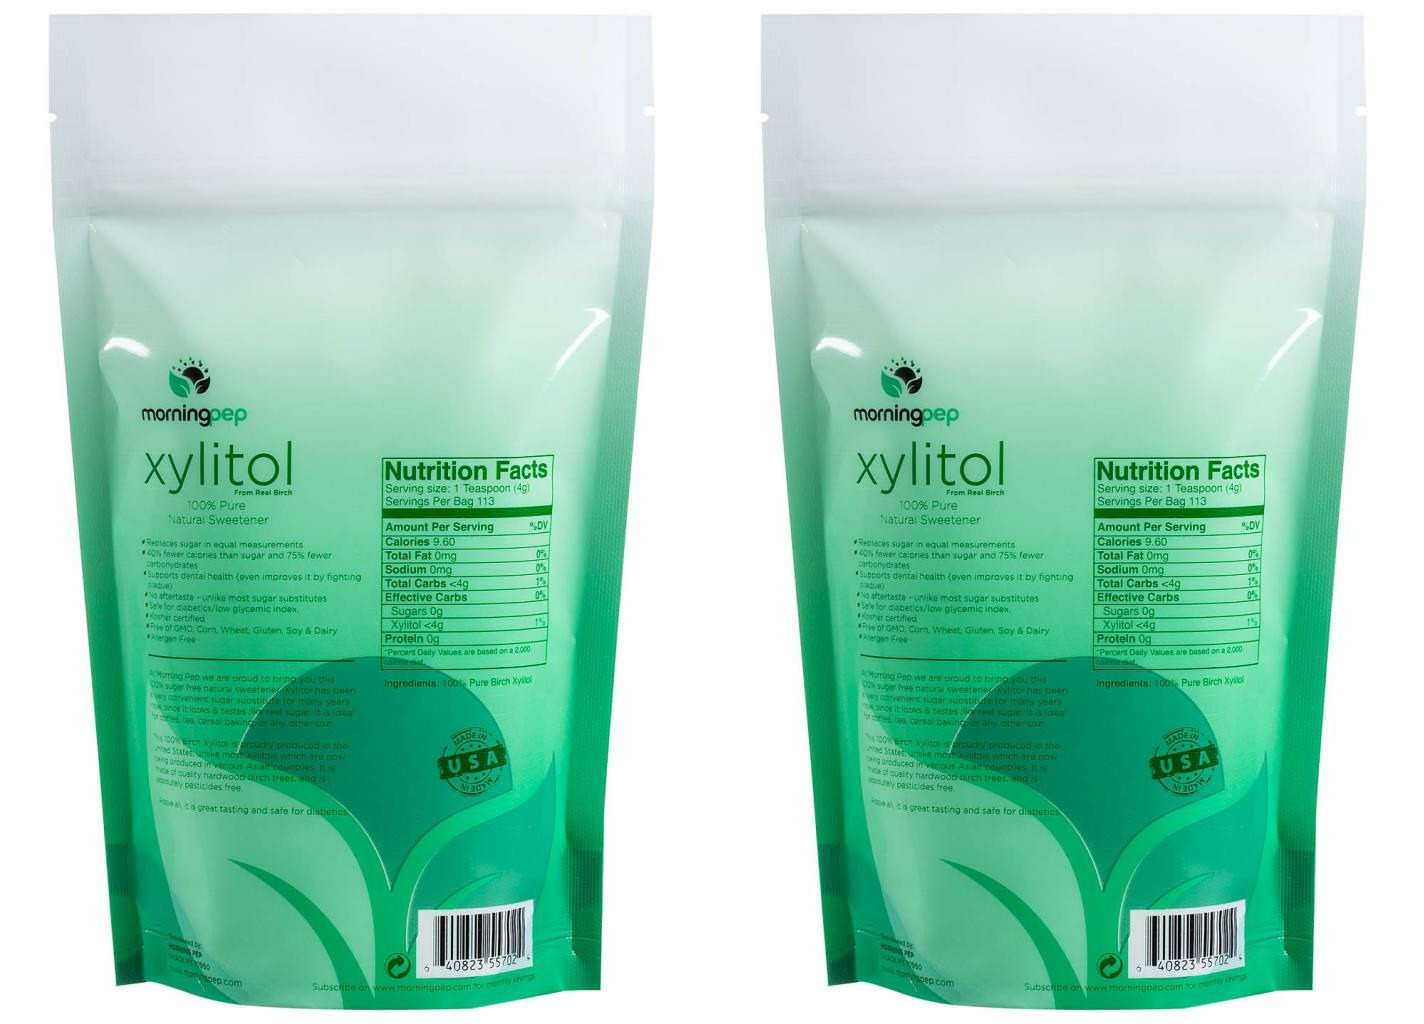 Pack of 2 Morning Pep Pure Birch Xylitol (Keto Diet Friendly) Sweetener 1 LB (Not from Corn) Non GMO - Kosher - Gluten Free - Product of USA. Total of 2 Lbs (32 OZ) by Morning Pep (Image #3)